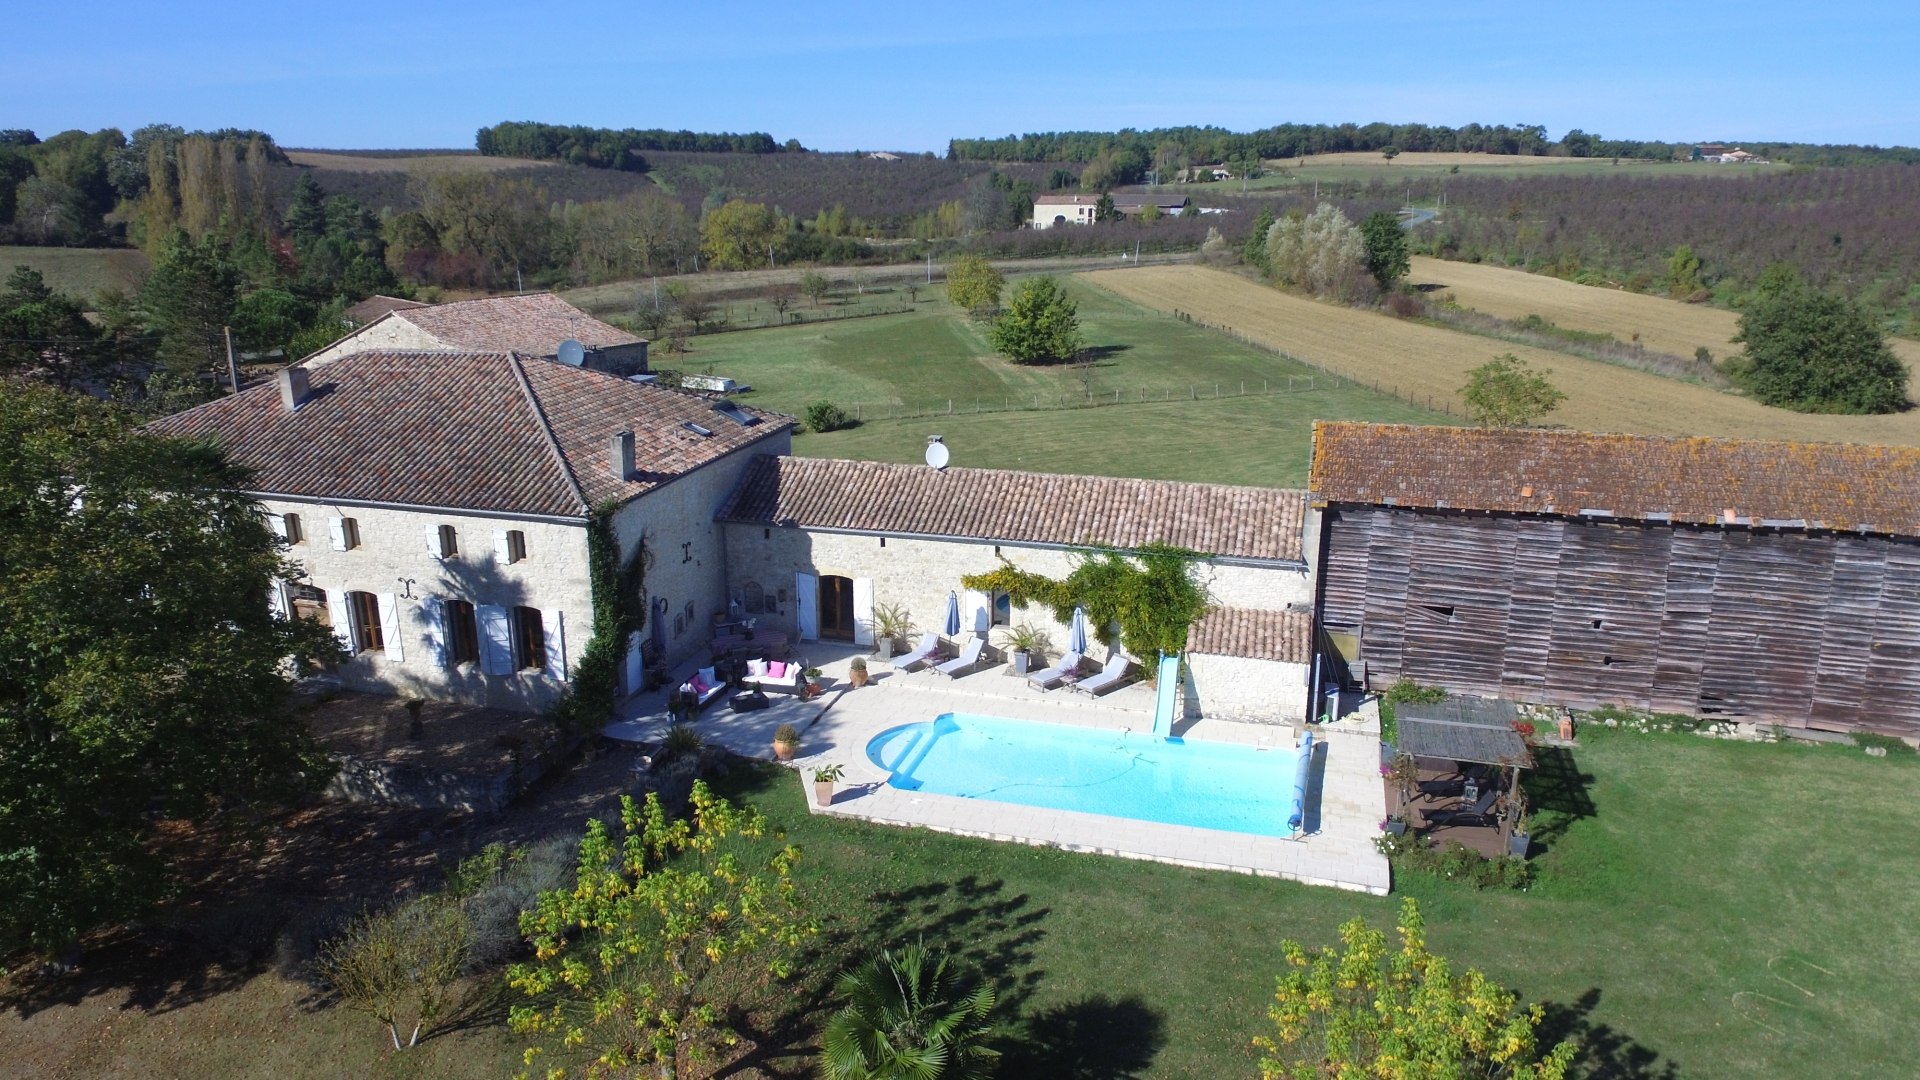 Chateau near Duras. ASKING PRICE: €999,000 ($1.18 million). TEMPLAR TOUCH: Rumors of Knights Templar treasure buried on the property in 1307. SELLING POINTS NOW: Seven bedrooms, separate attached building with guest accommodations, heated swimming pool, tobacco barn and a small vineyard.   (Photo courtesy of Maxwell-Baynes)